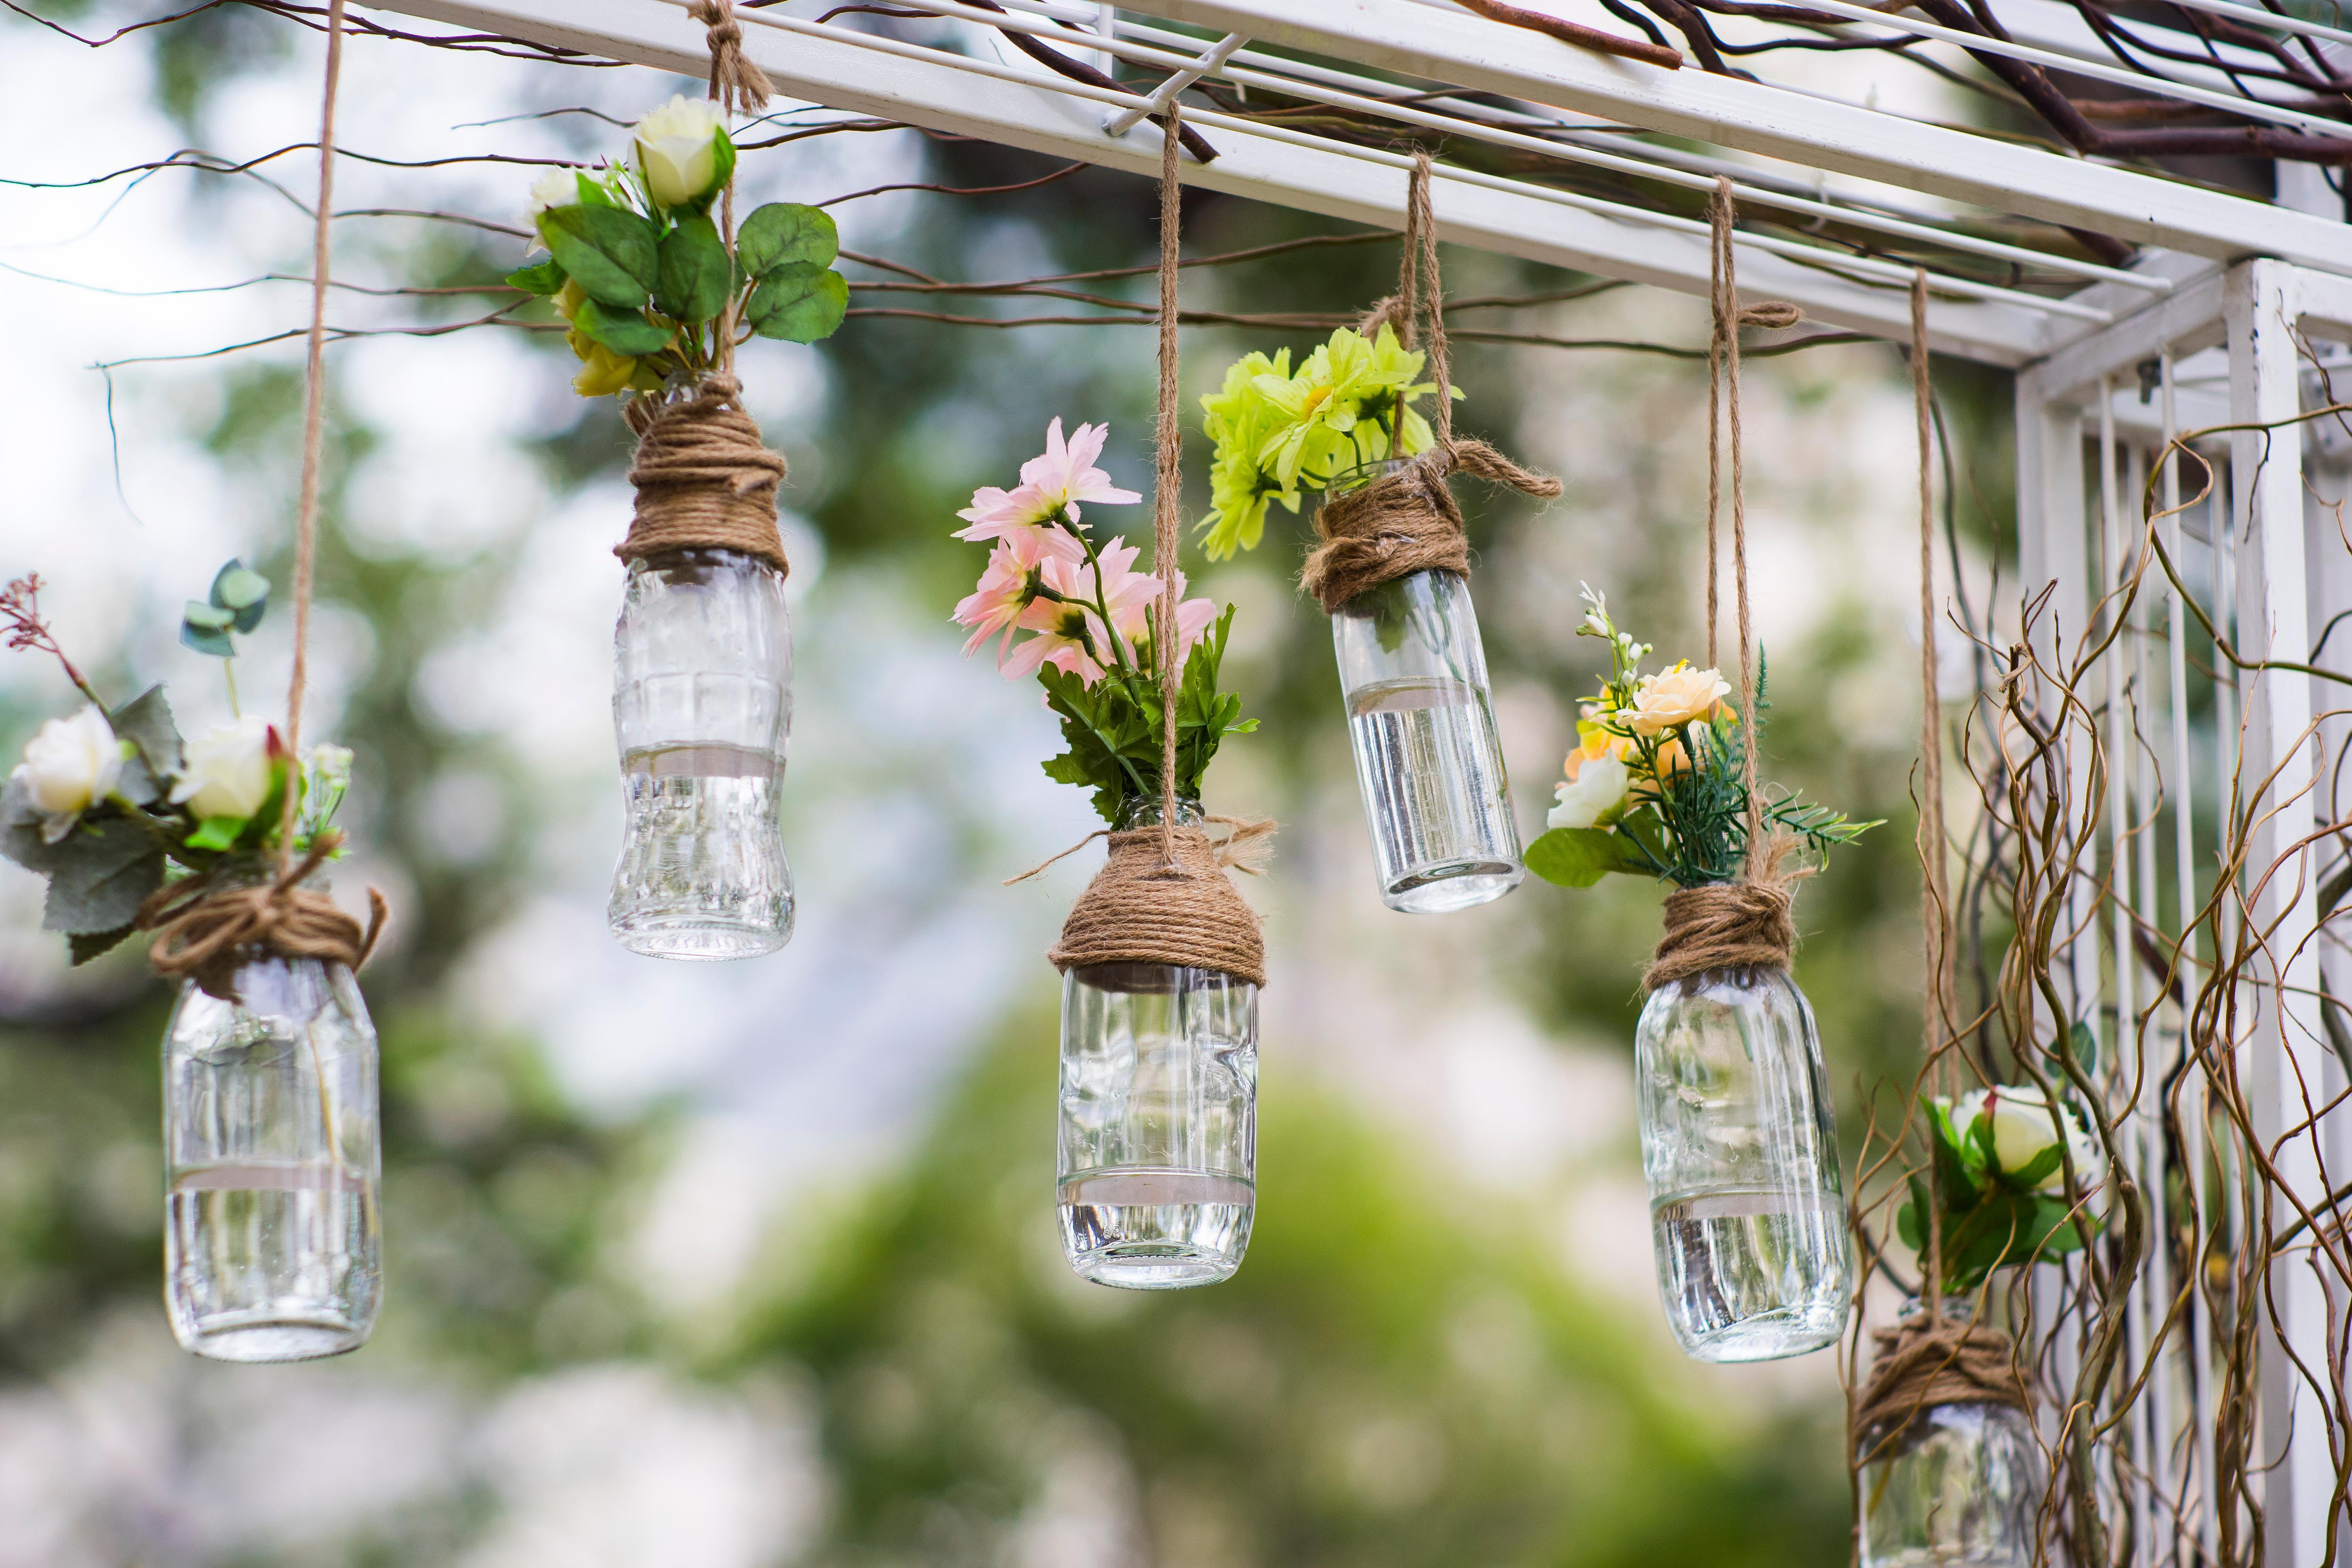 Diy Garden Ideas Craft Ideas And More Top Pinterest Searches During Coronavirus Pandemic